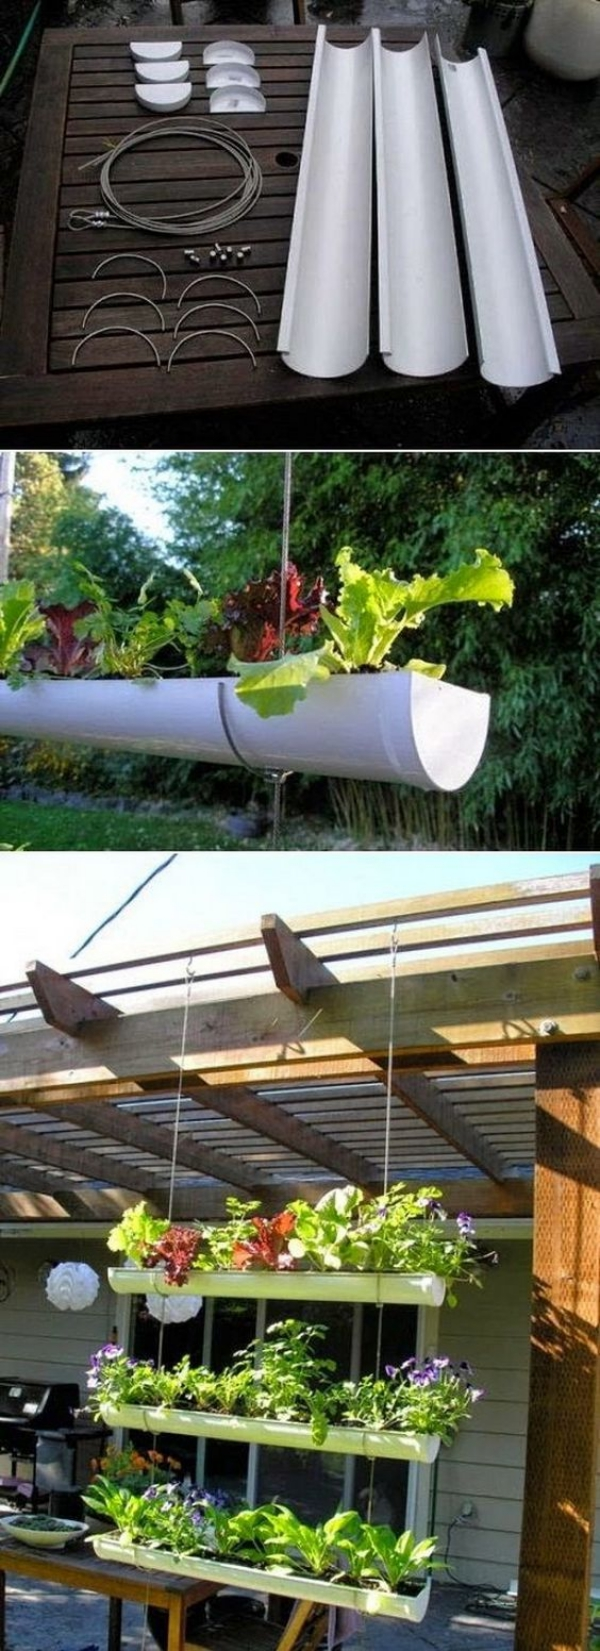 Super-Creative-Vertical-Garden-Ideas-14